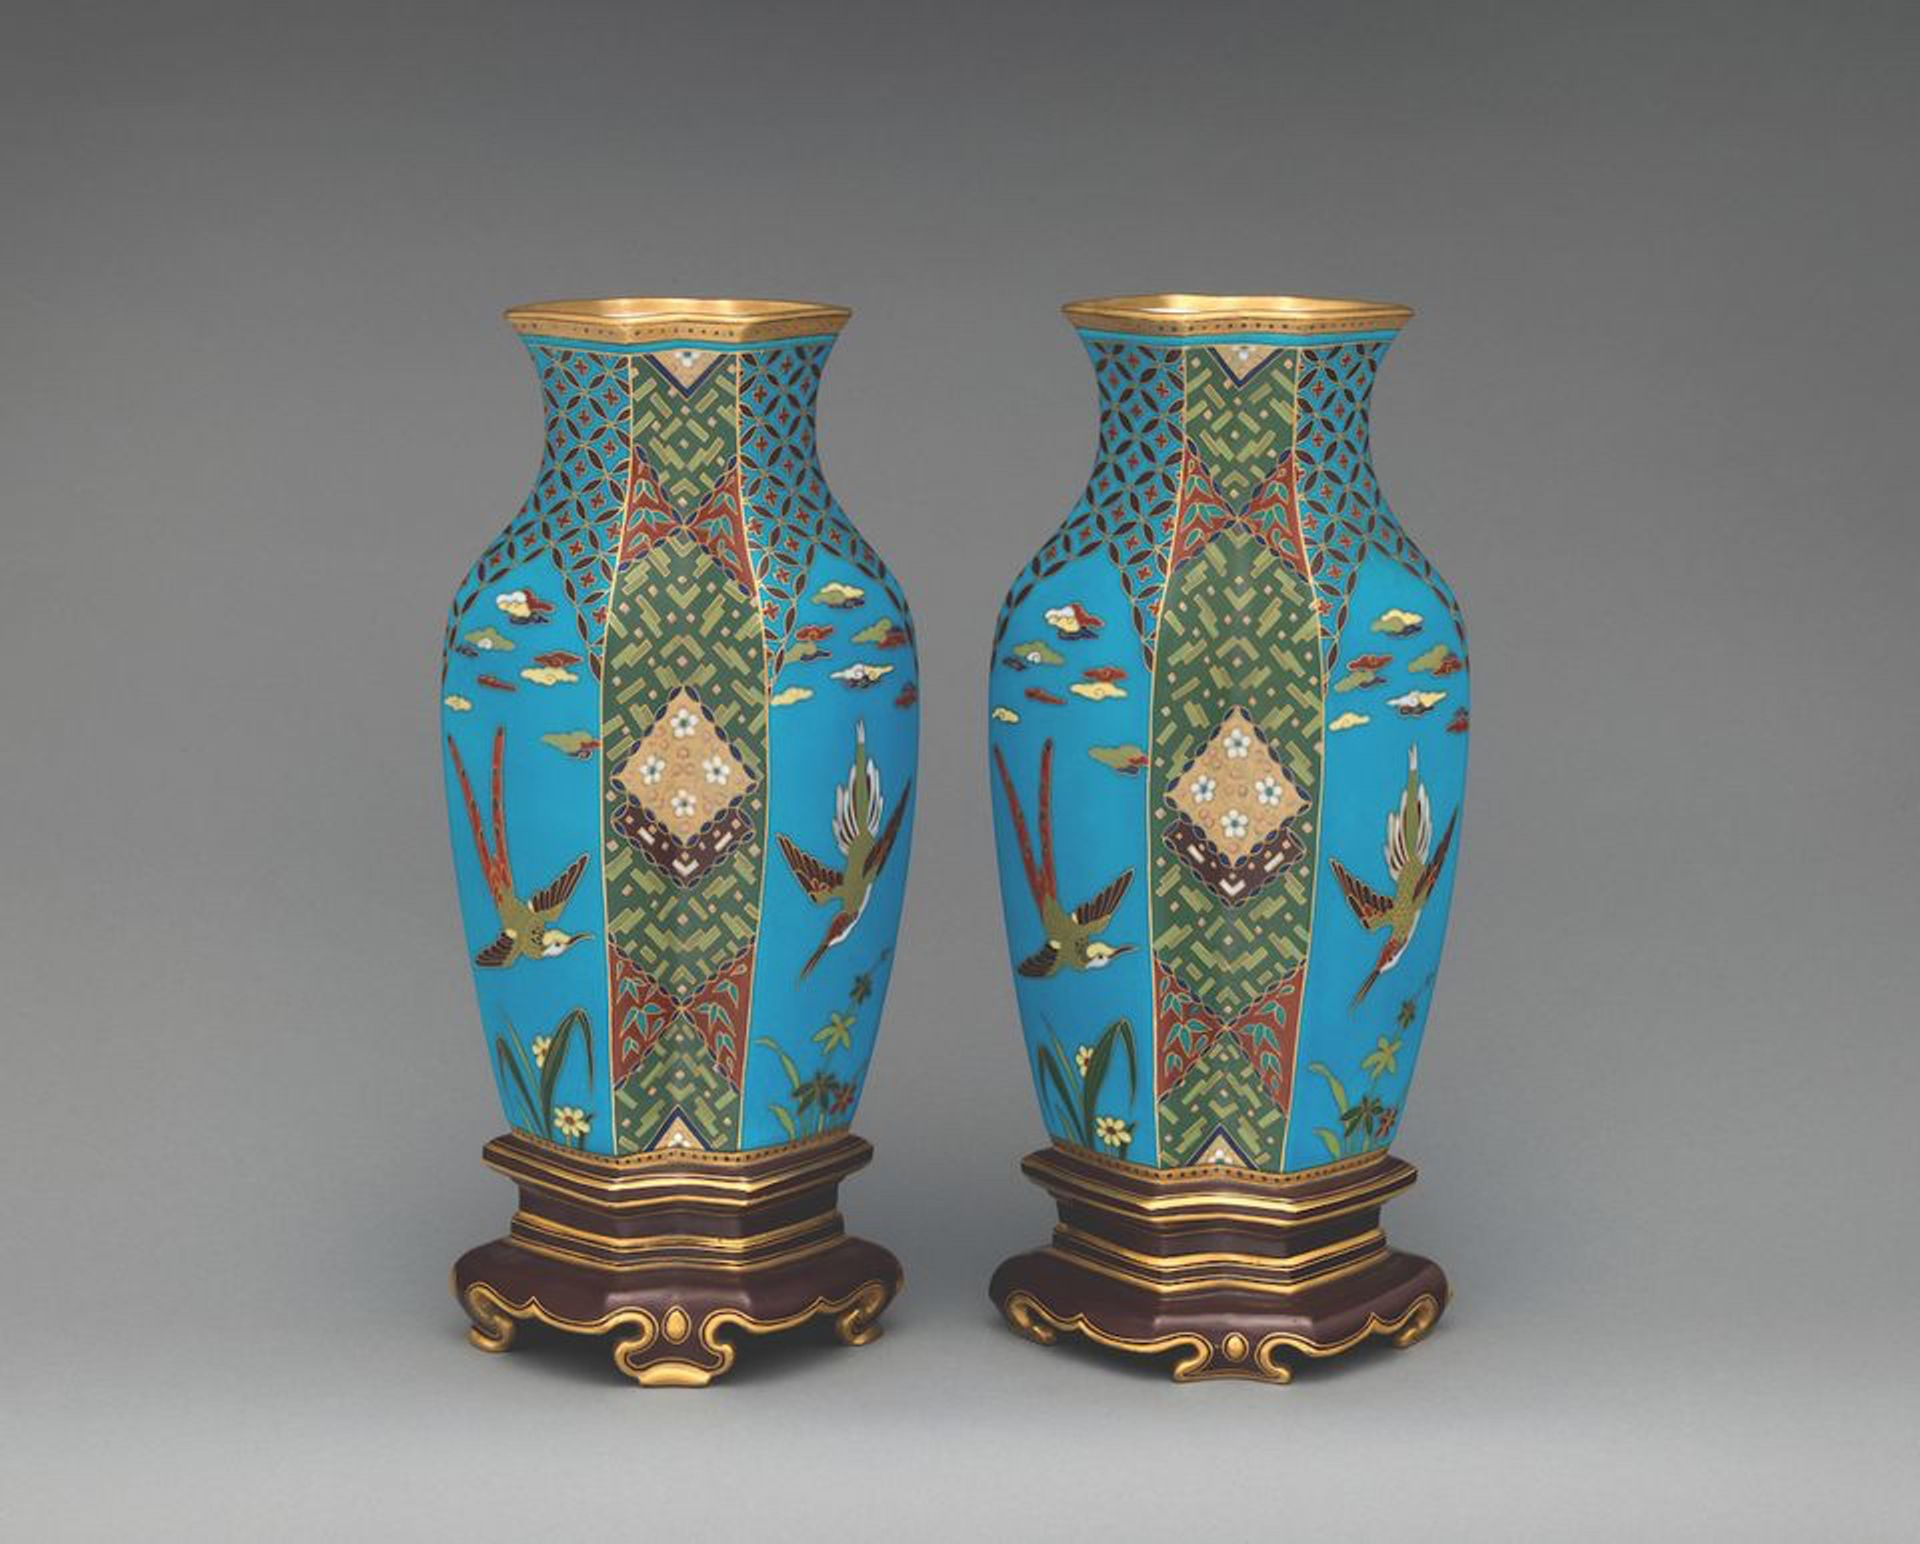 A pair of Christopher Dresser (1872- 80) earthenware vases are among the 700 works going on show in March The Metropolitan Museum of Art